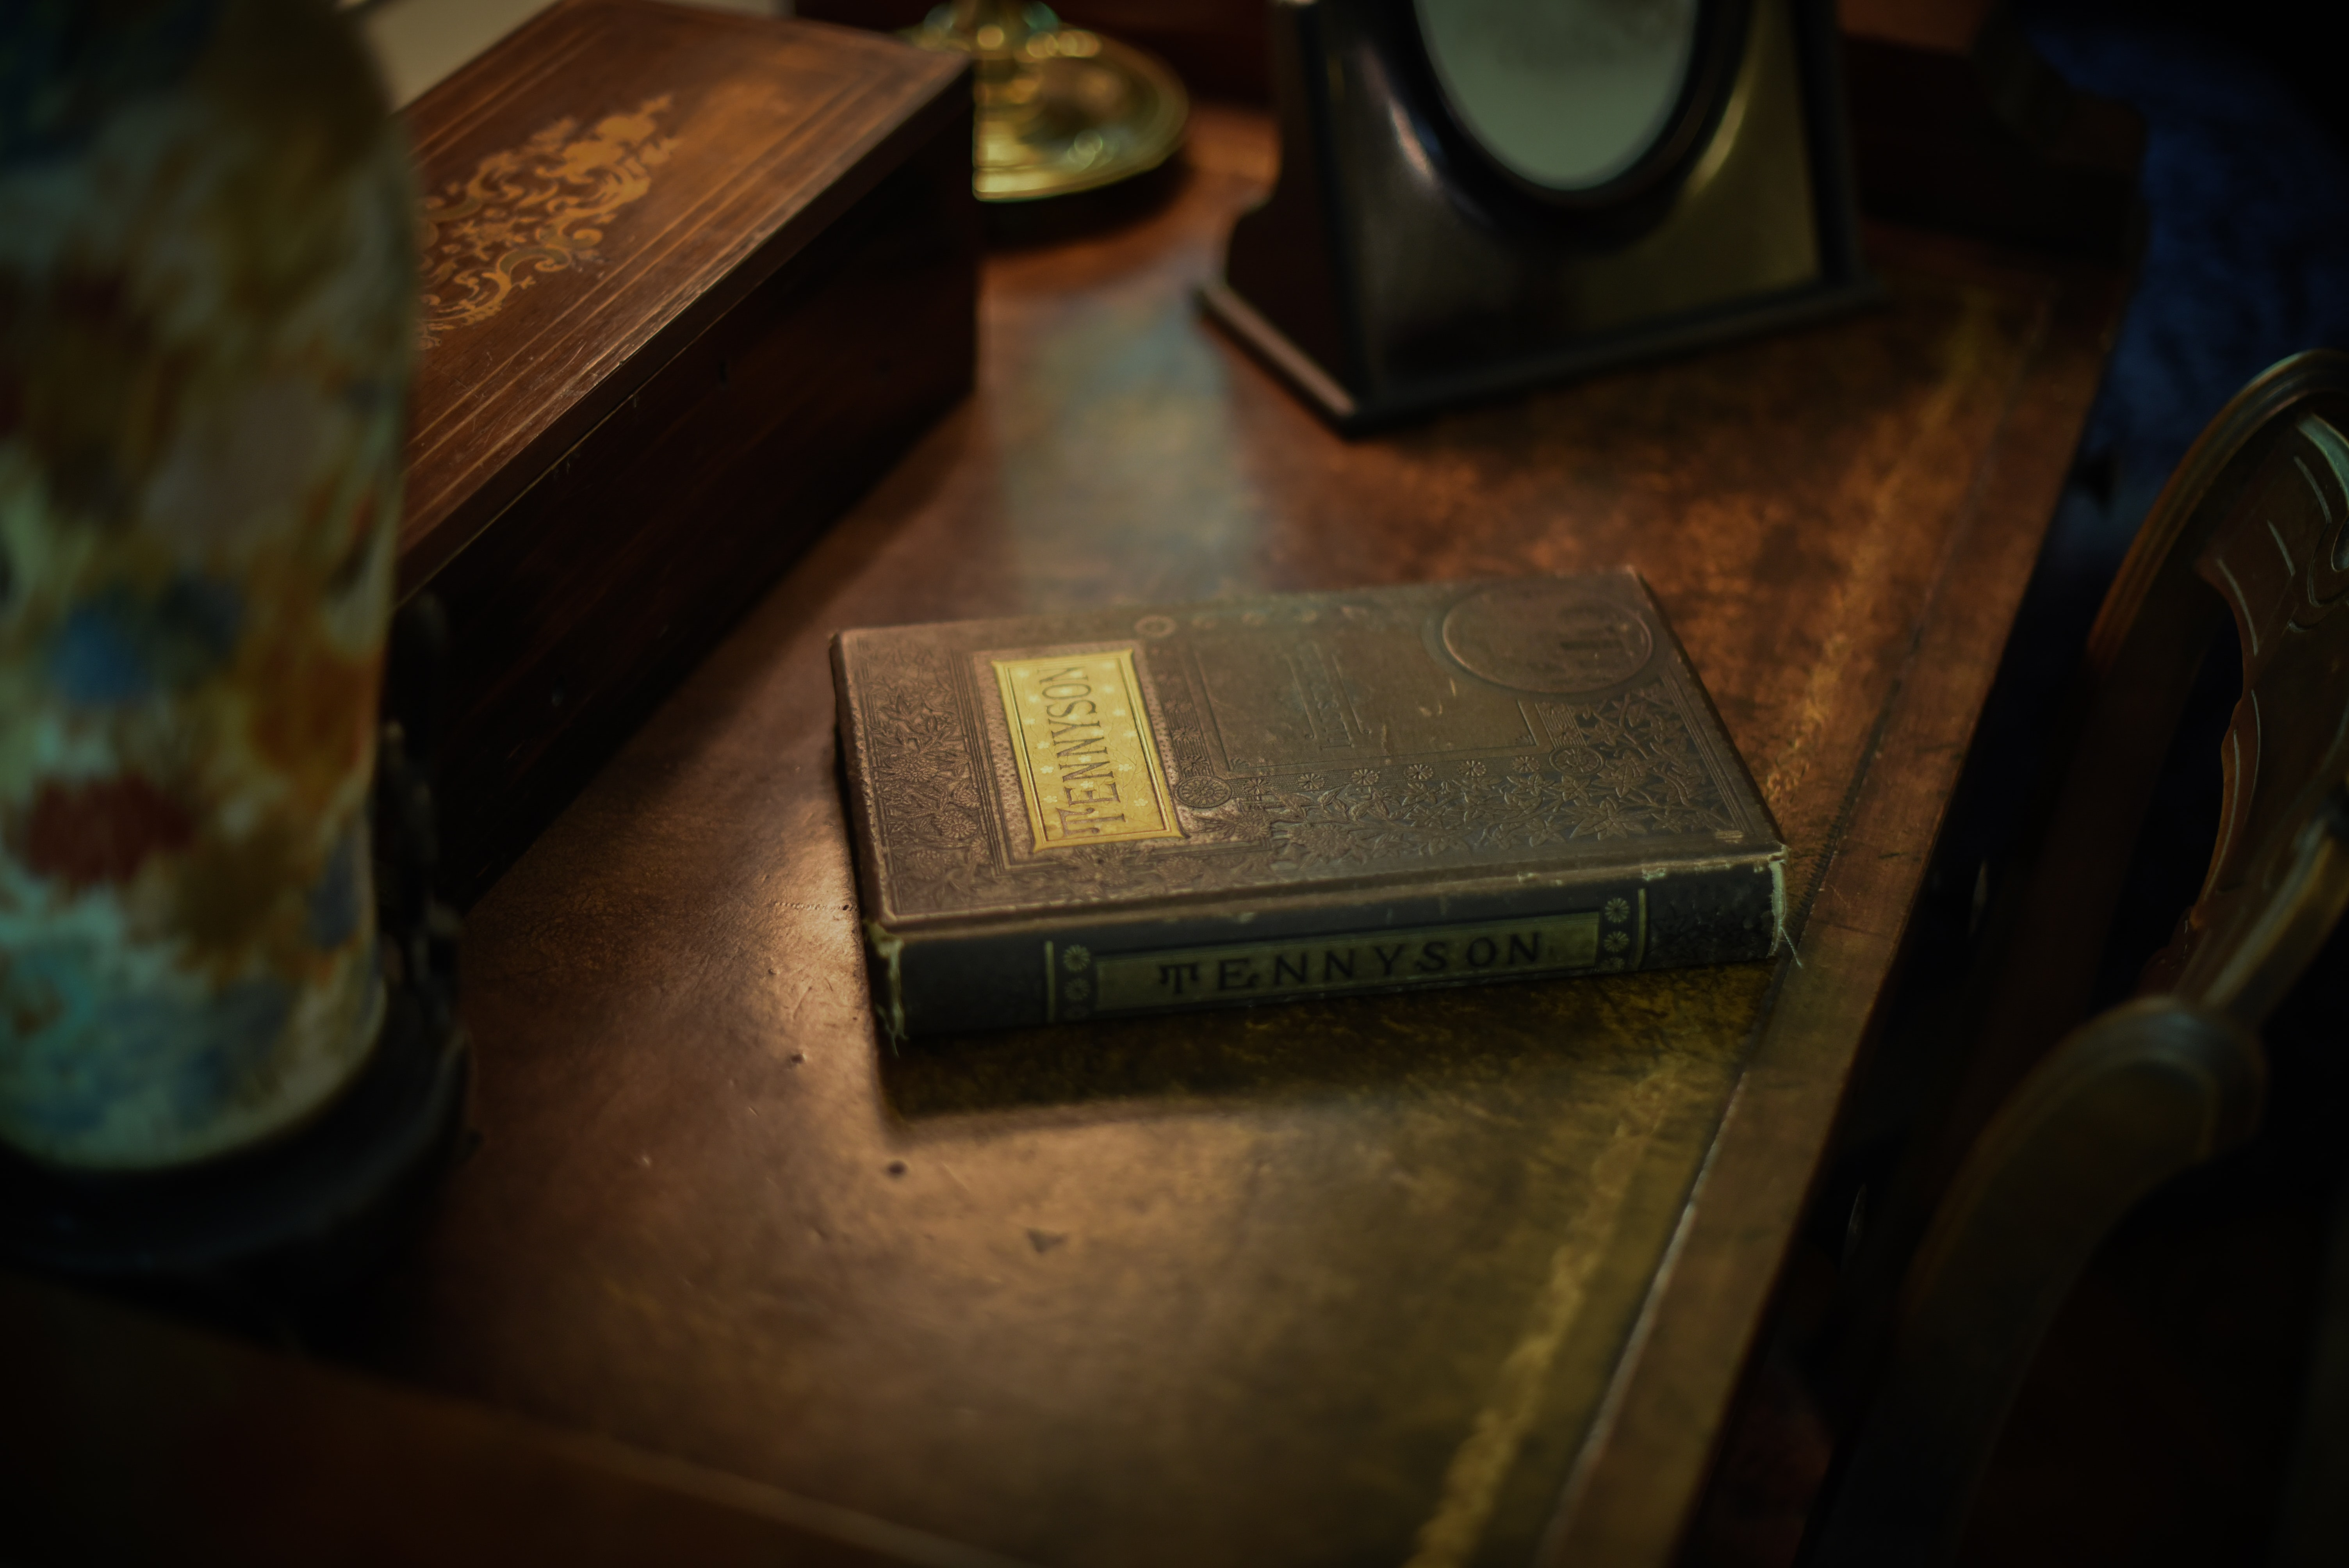 Tennyson covered book on wooden surface near box